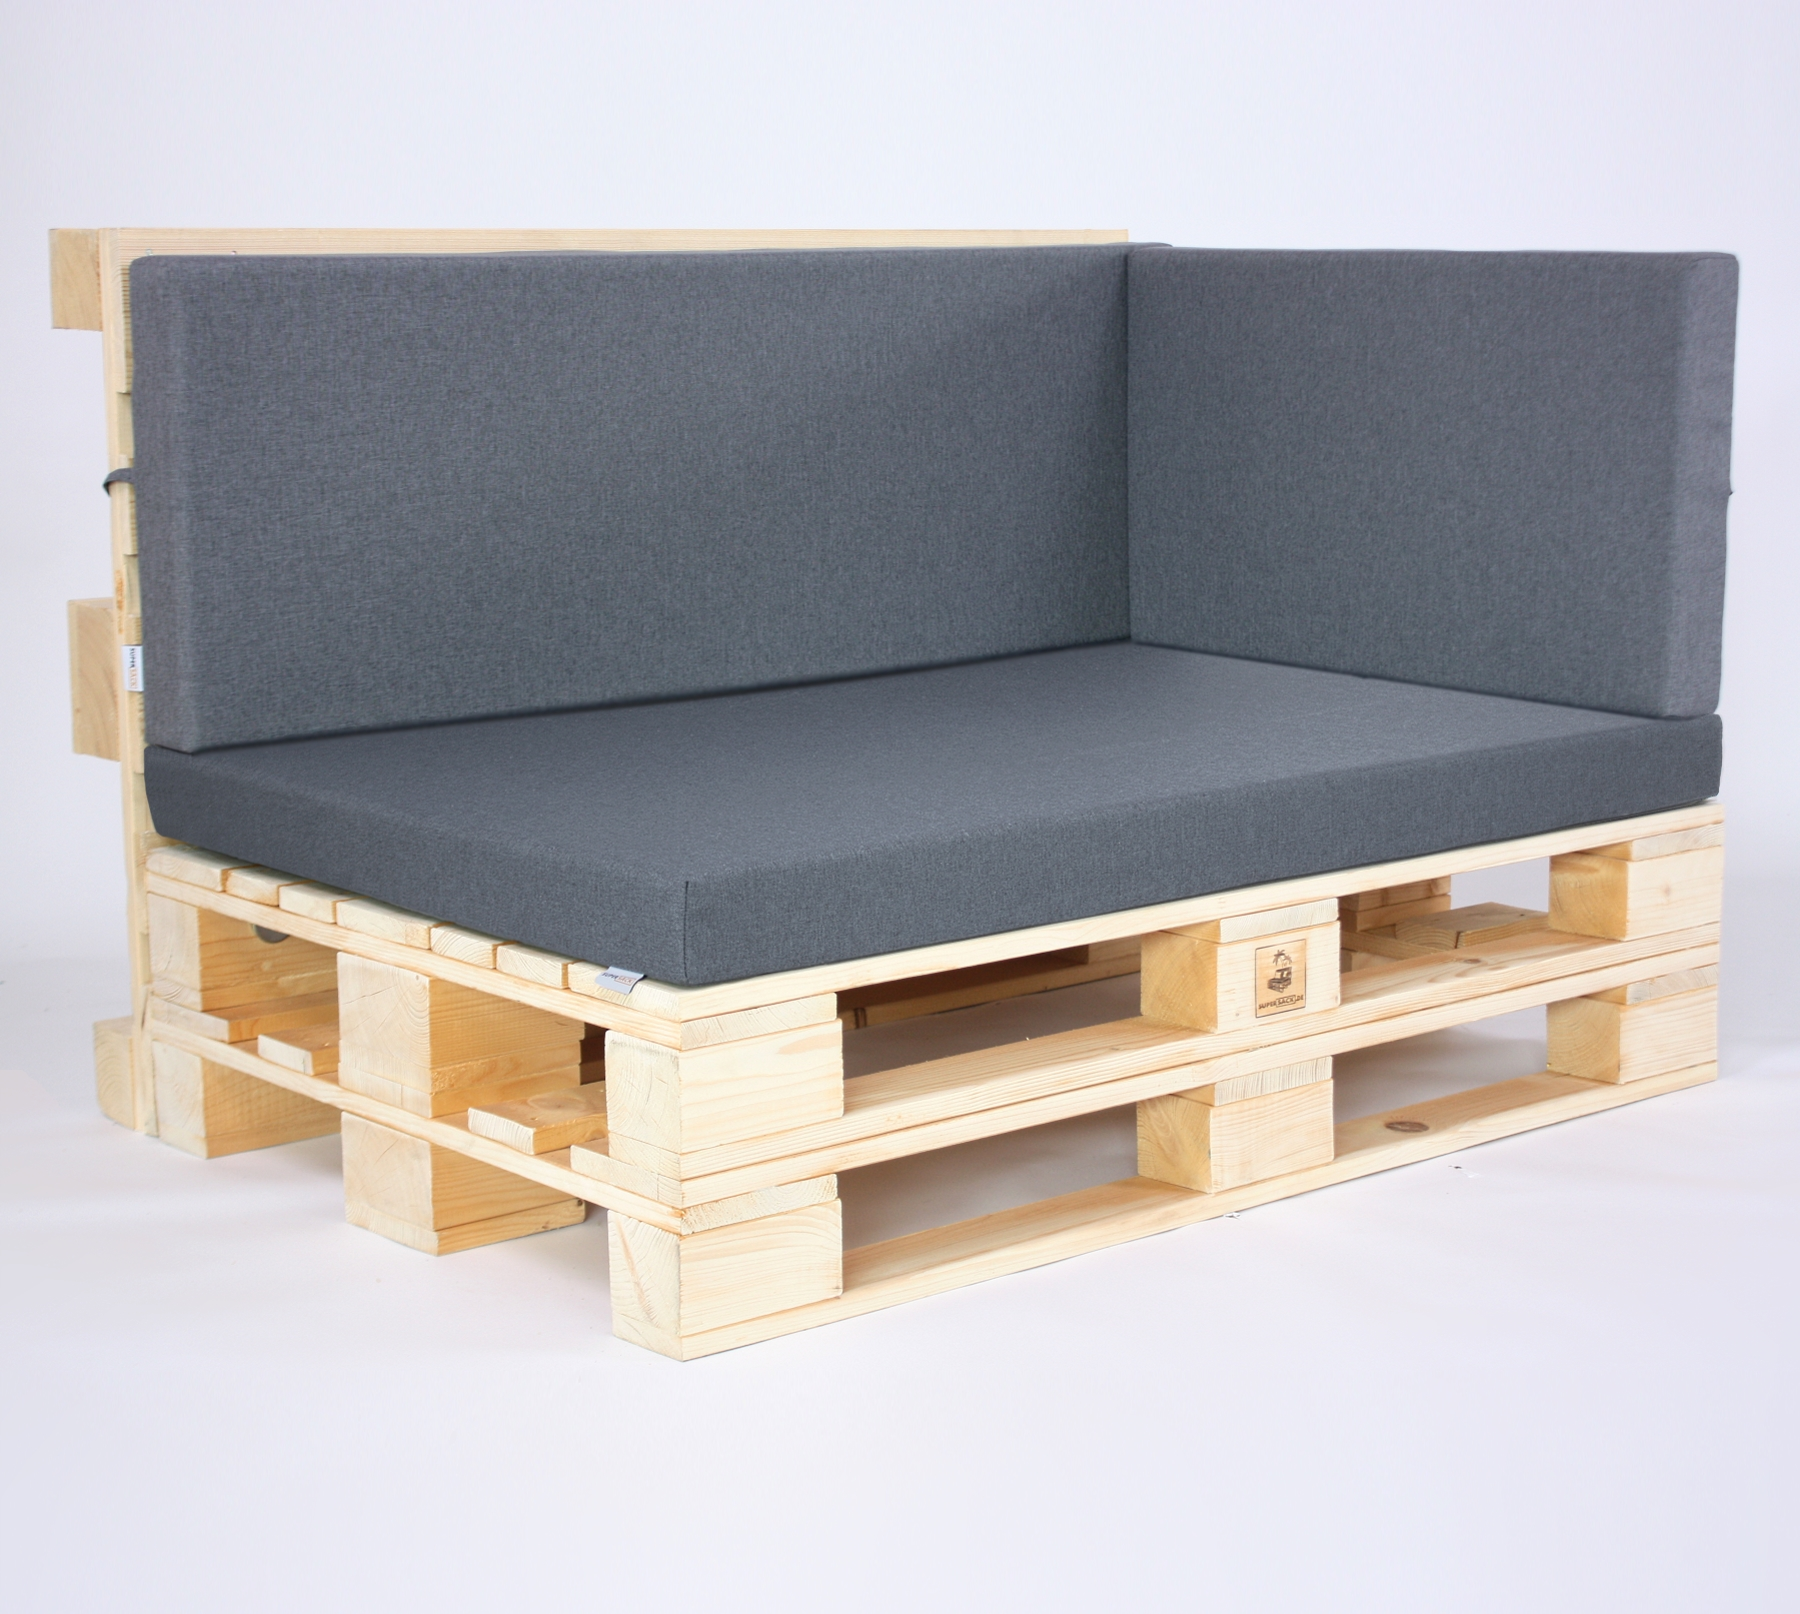 Polster paletten sofa outdoor for Loungemobel outdoor kissen